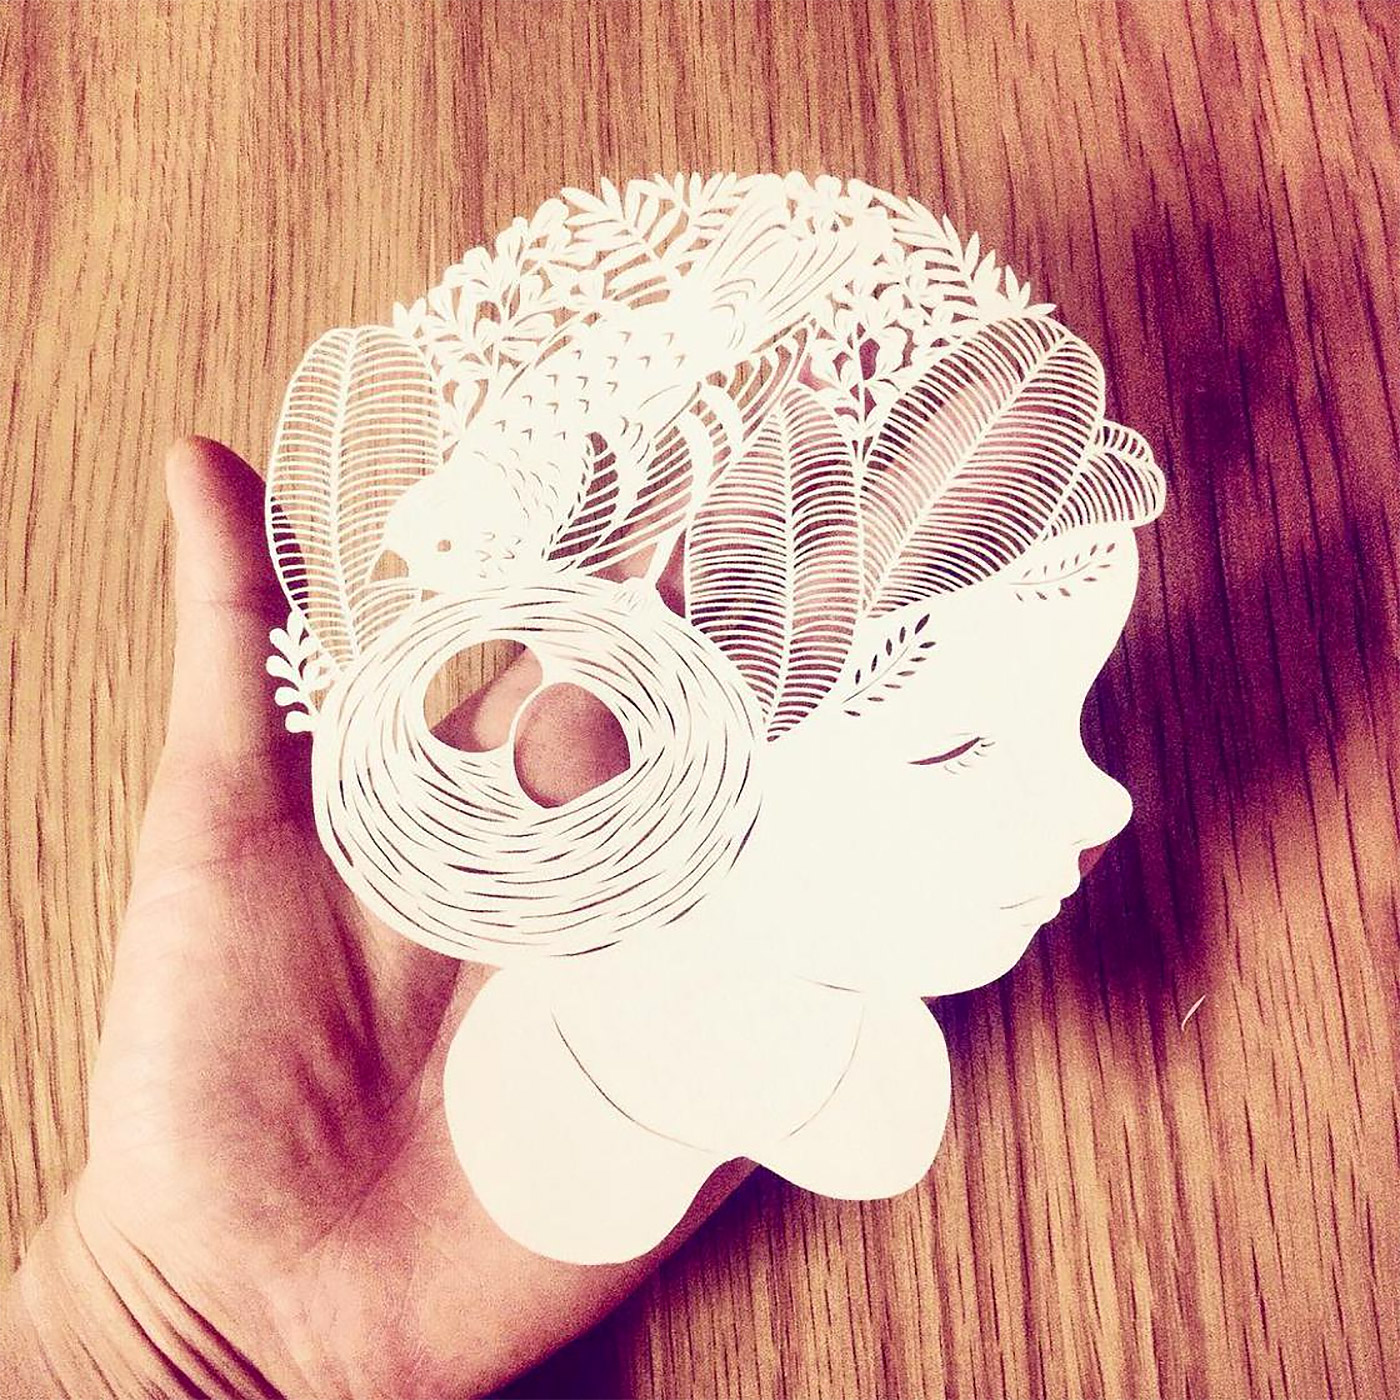 Paper Cut Artworks by Kanako Abe | Daily design inspiration for creatives |  Inspiration Grid